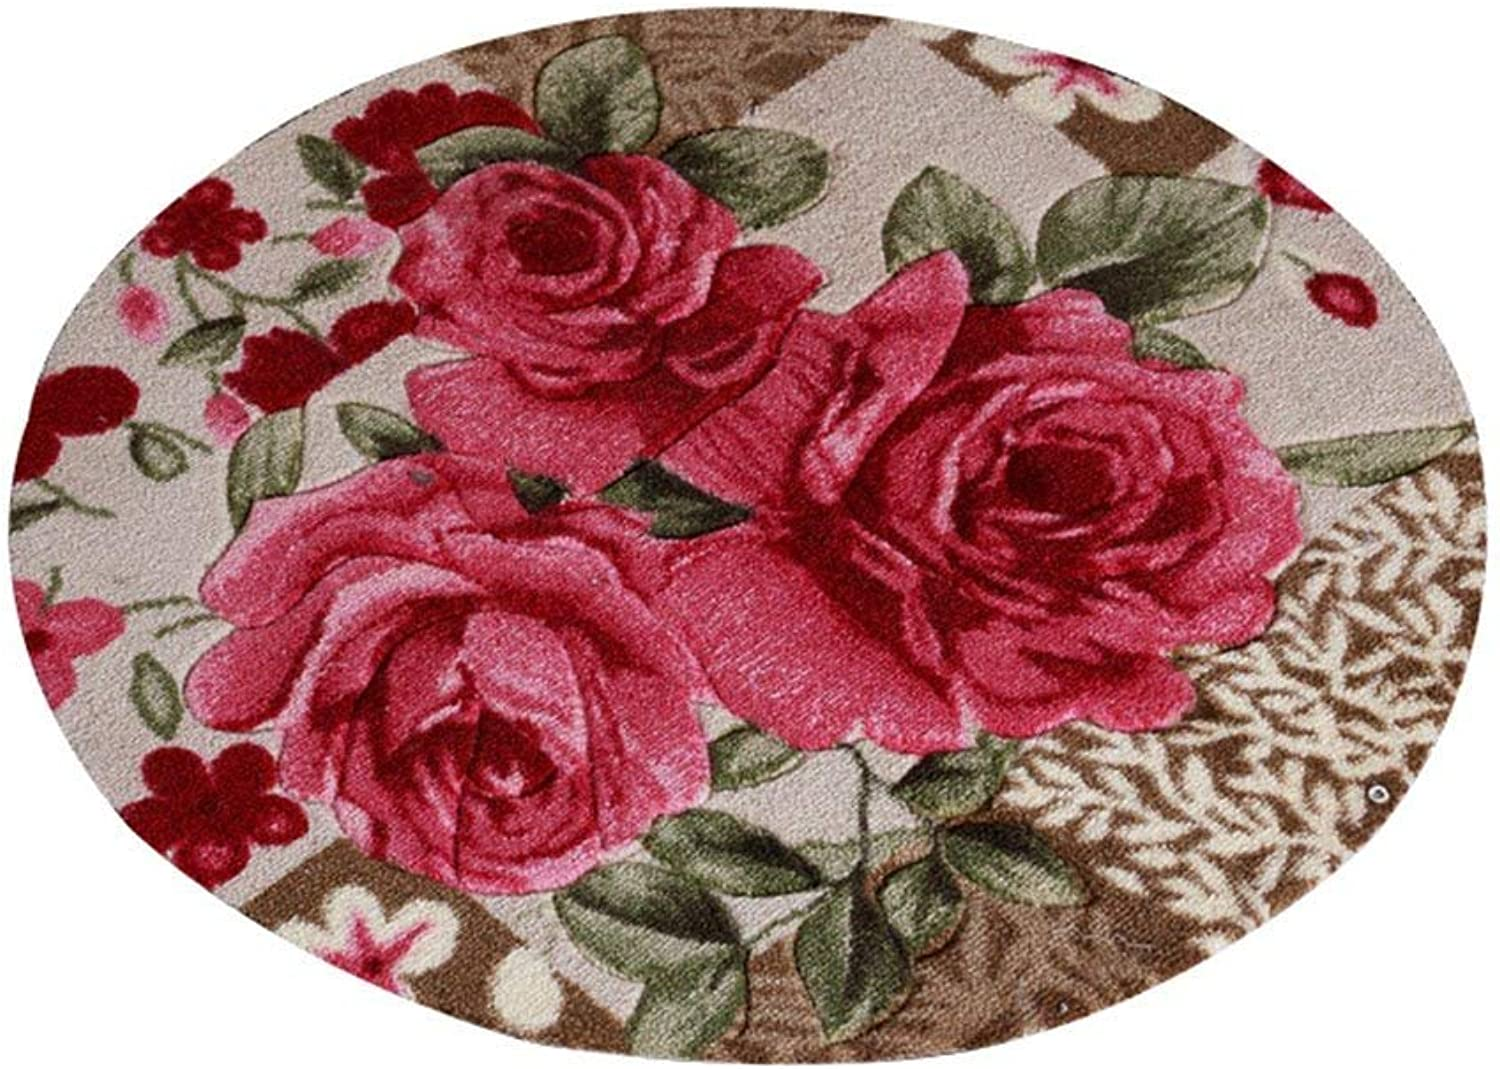 Round Carpet, European Village Farmhouse Style Carved Living Room Carpet Bedroom pad Computer Chair Cushion Non-Slip Door mat 80x80cm, Soft and Comfortable (color    3, Size   100  100cm)